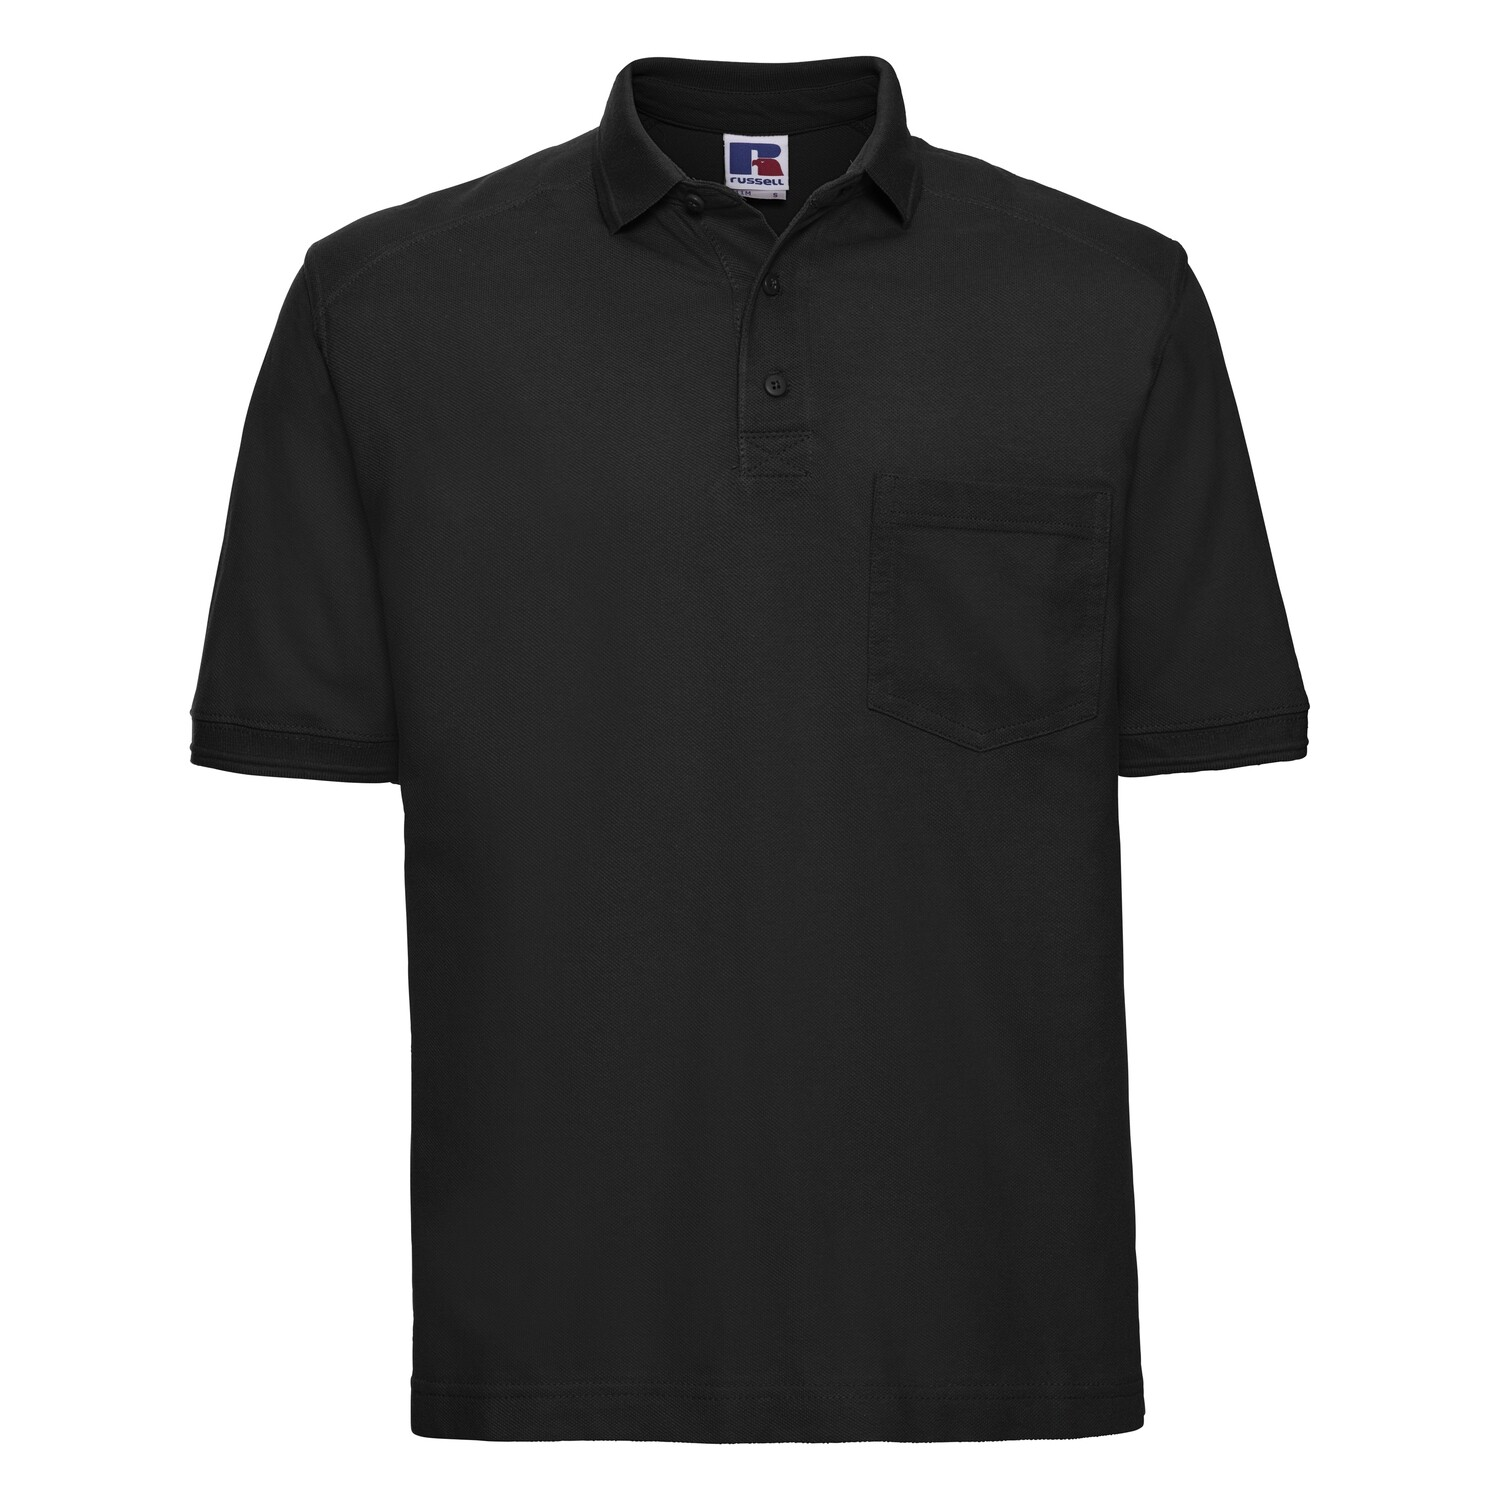 J011M Russell Heavy-duty polo